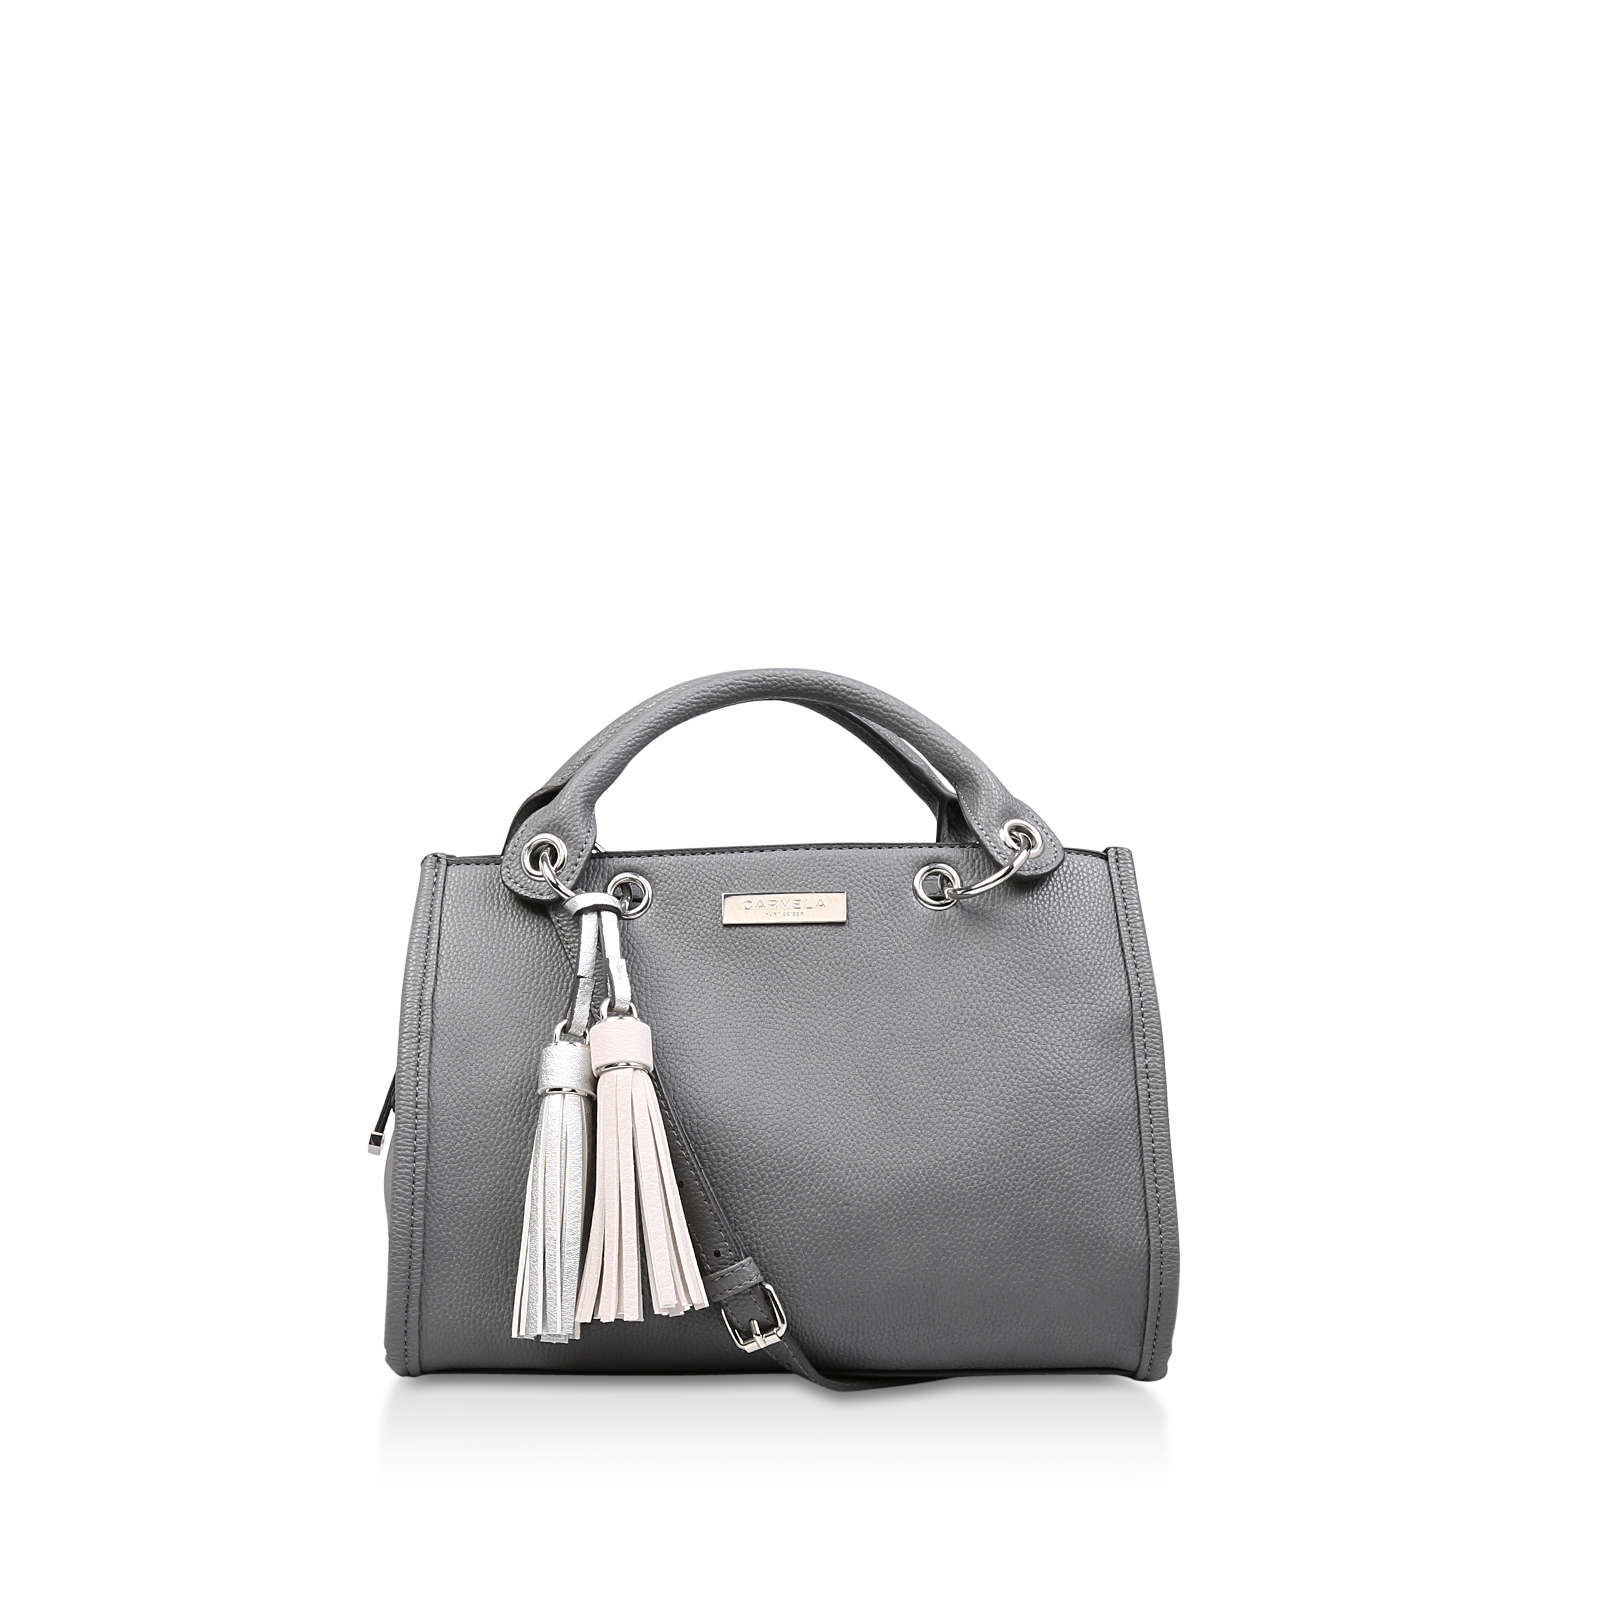 SIENNA SLOUCH BAG